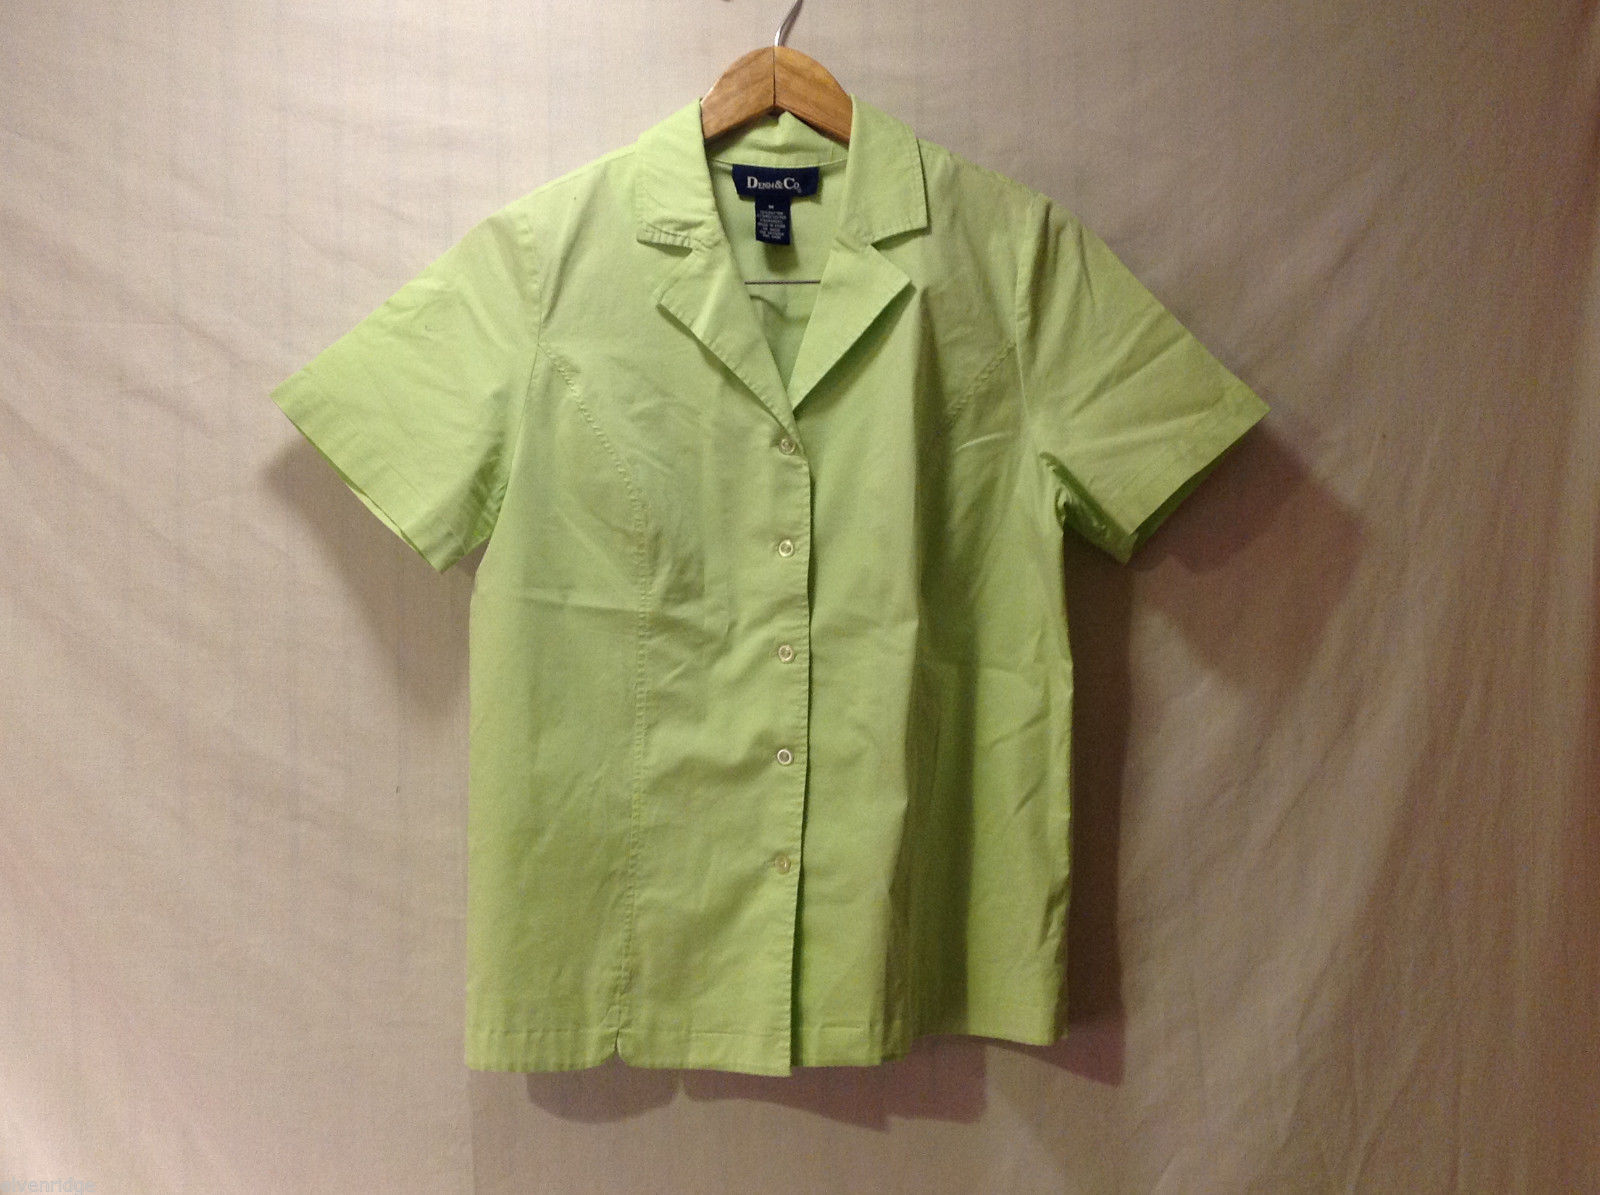 Denim & Co. Women's Size M Lime Green Button-Down Cotton Shirt w/ Short Sleeves